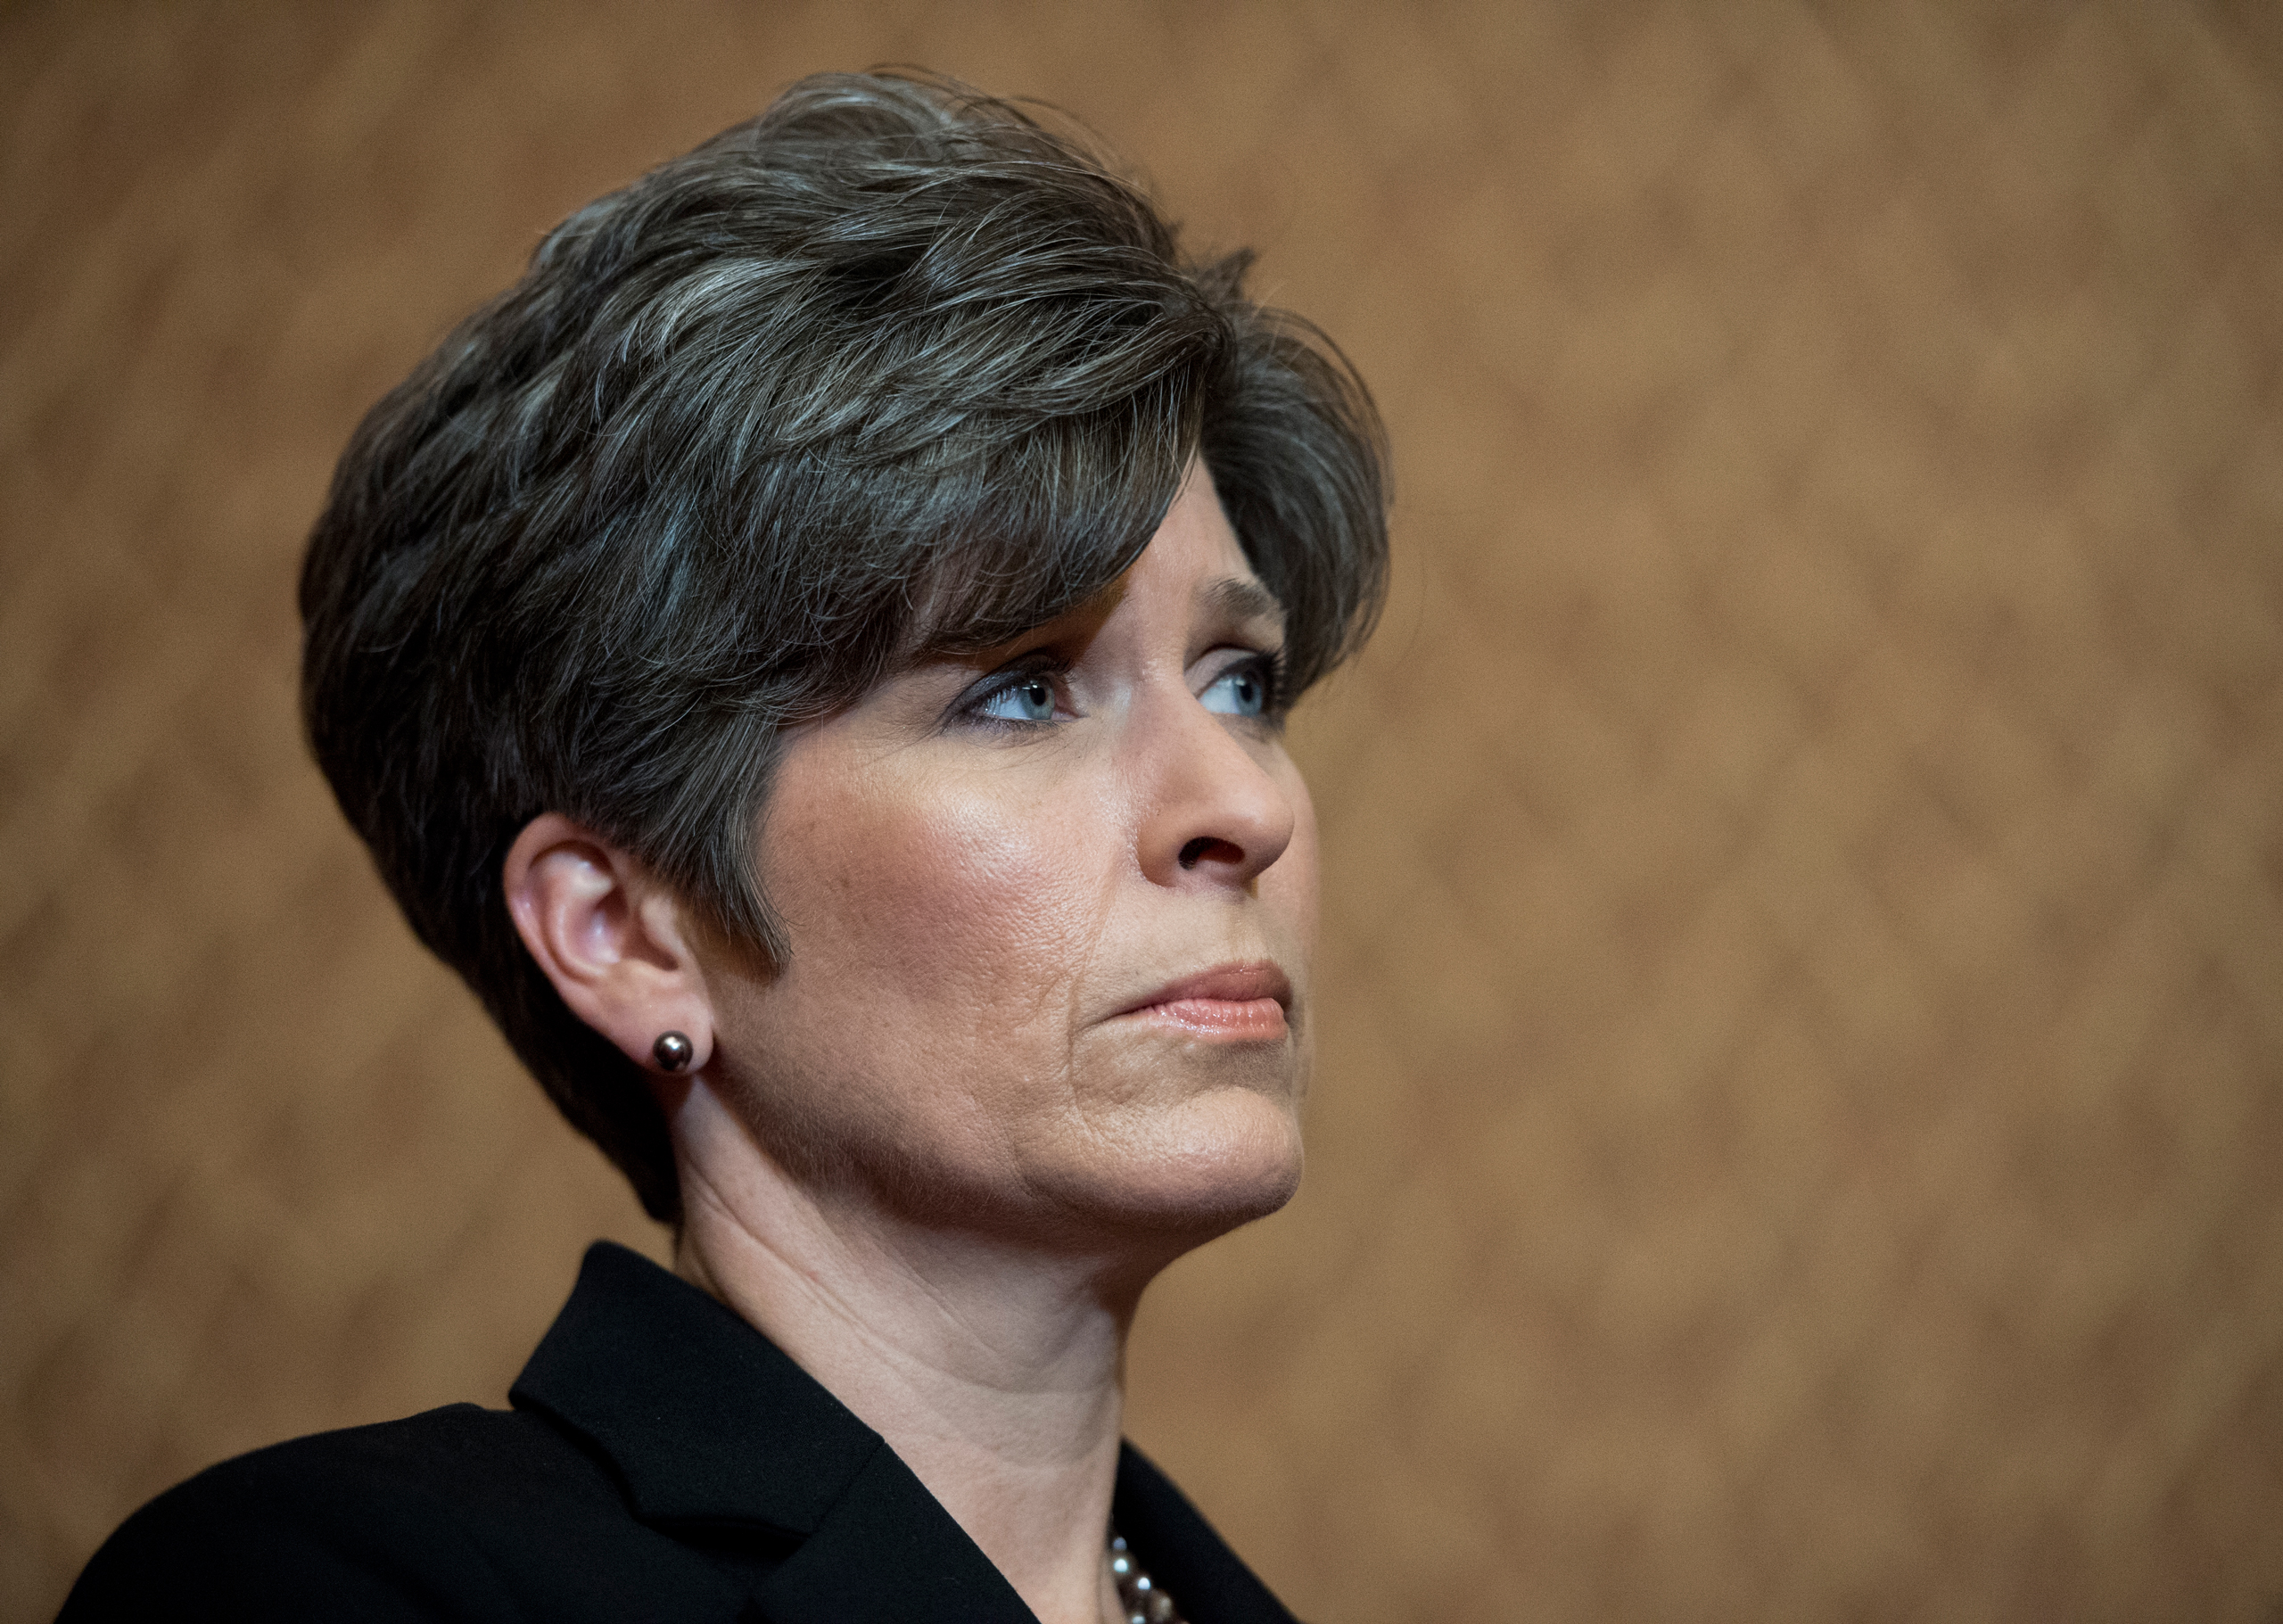 Sen. Joni Ernst participates in the news conference with survivors of sexual assault to urge the Senate to pass the Campus Accountability and Safety Act April 26, 2016.